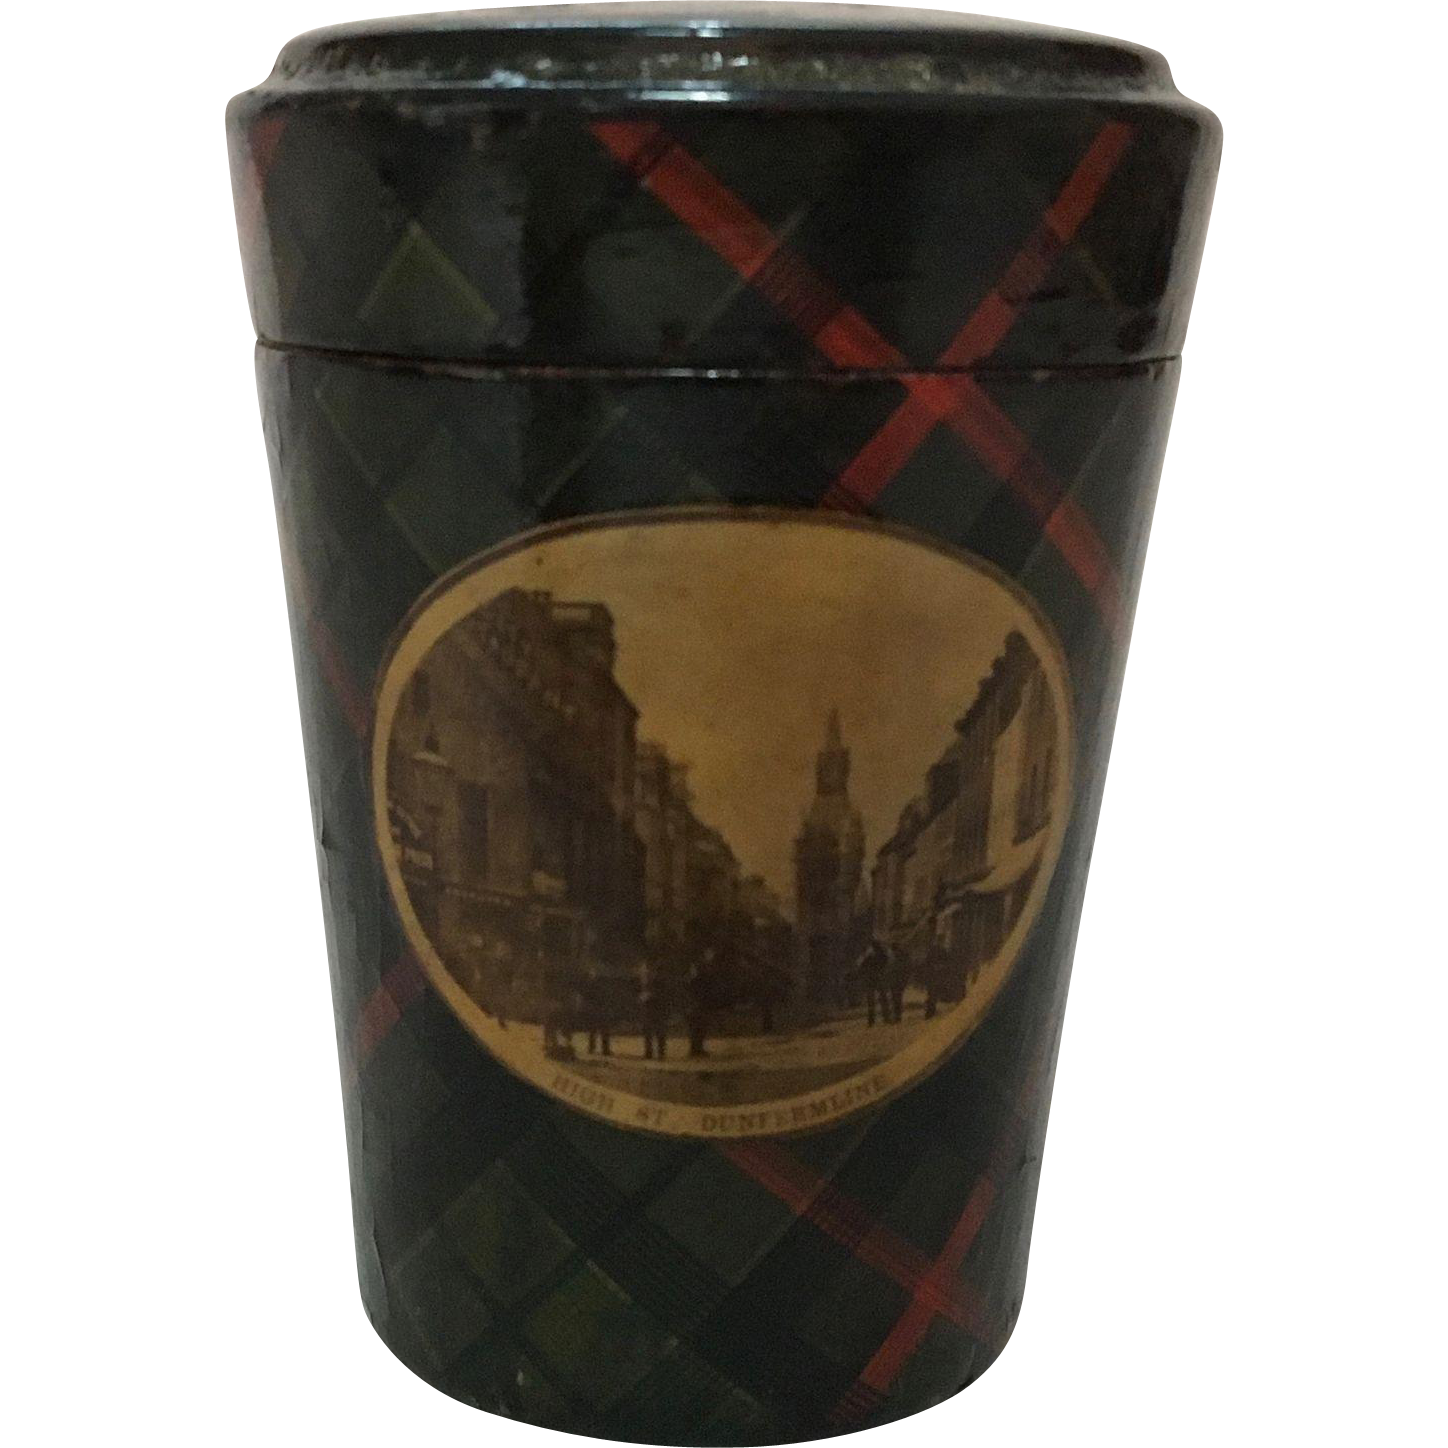 Tartan Ware Beaker/Shot Glass Holder and Glass